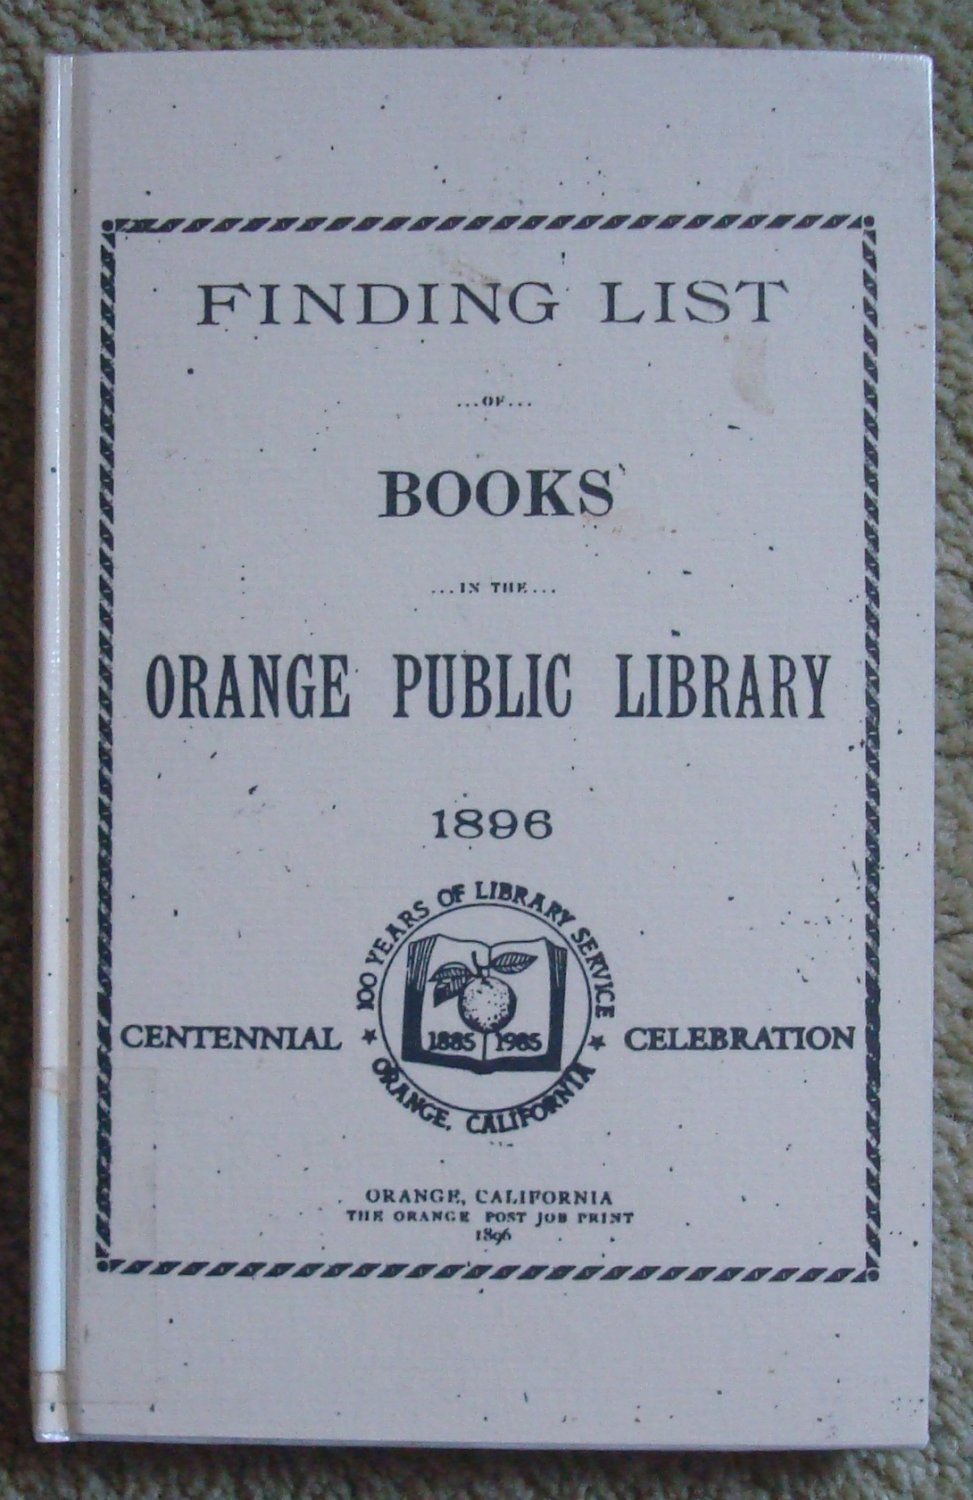 Finding List of Books in the Orange Public Library 1896